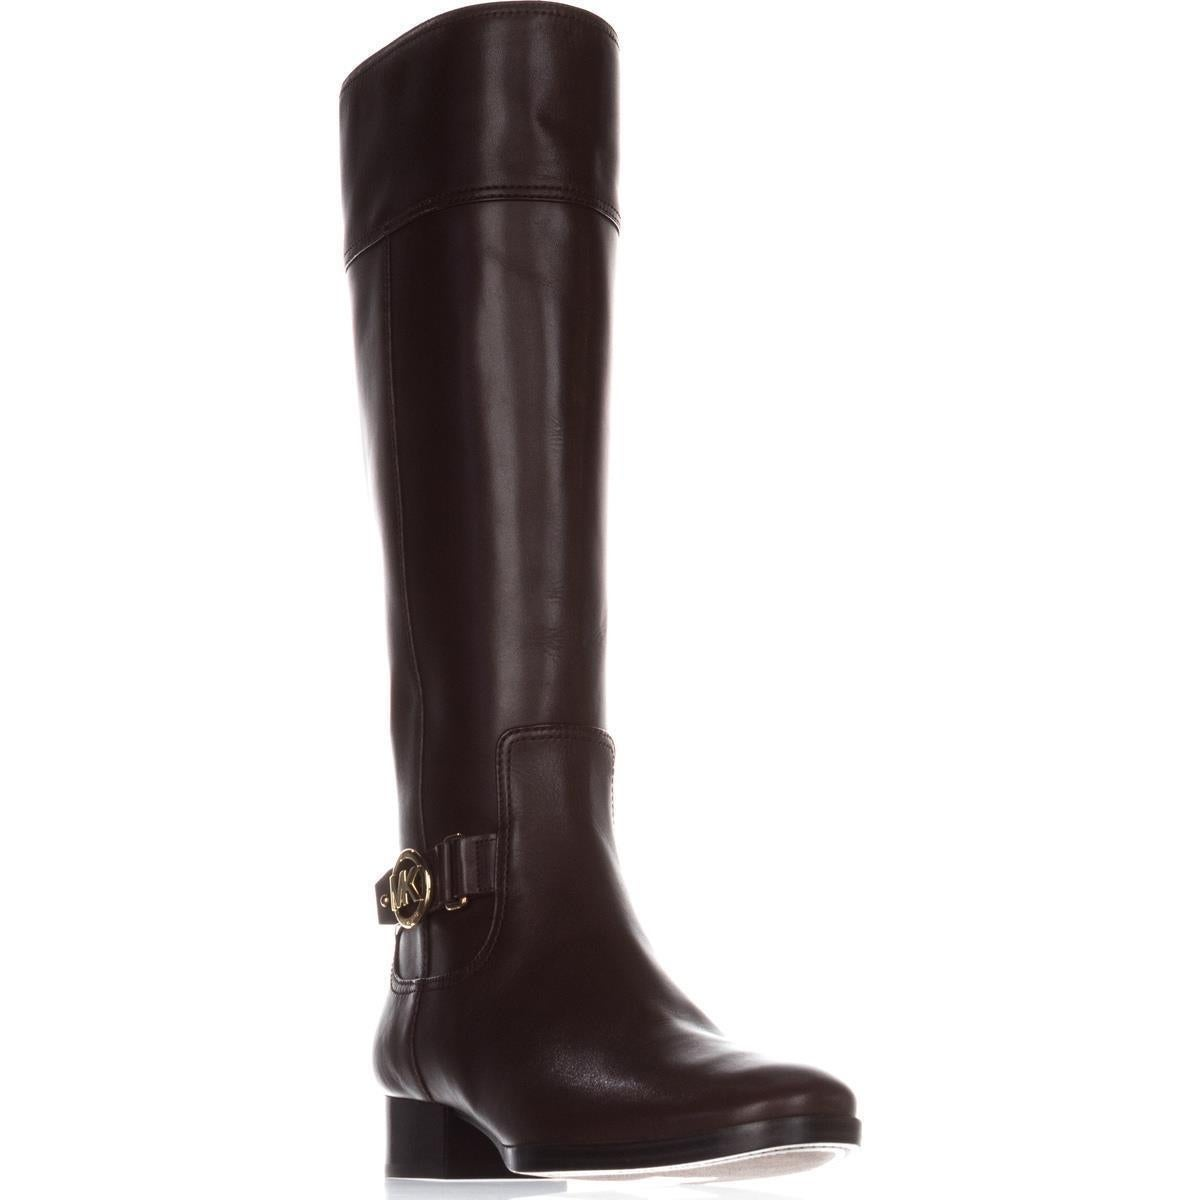 47b7ed338 Shop MICHAEL Michael Kors Harland Boot Riding Boots, Mocha - Free ...